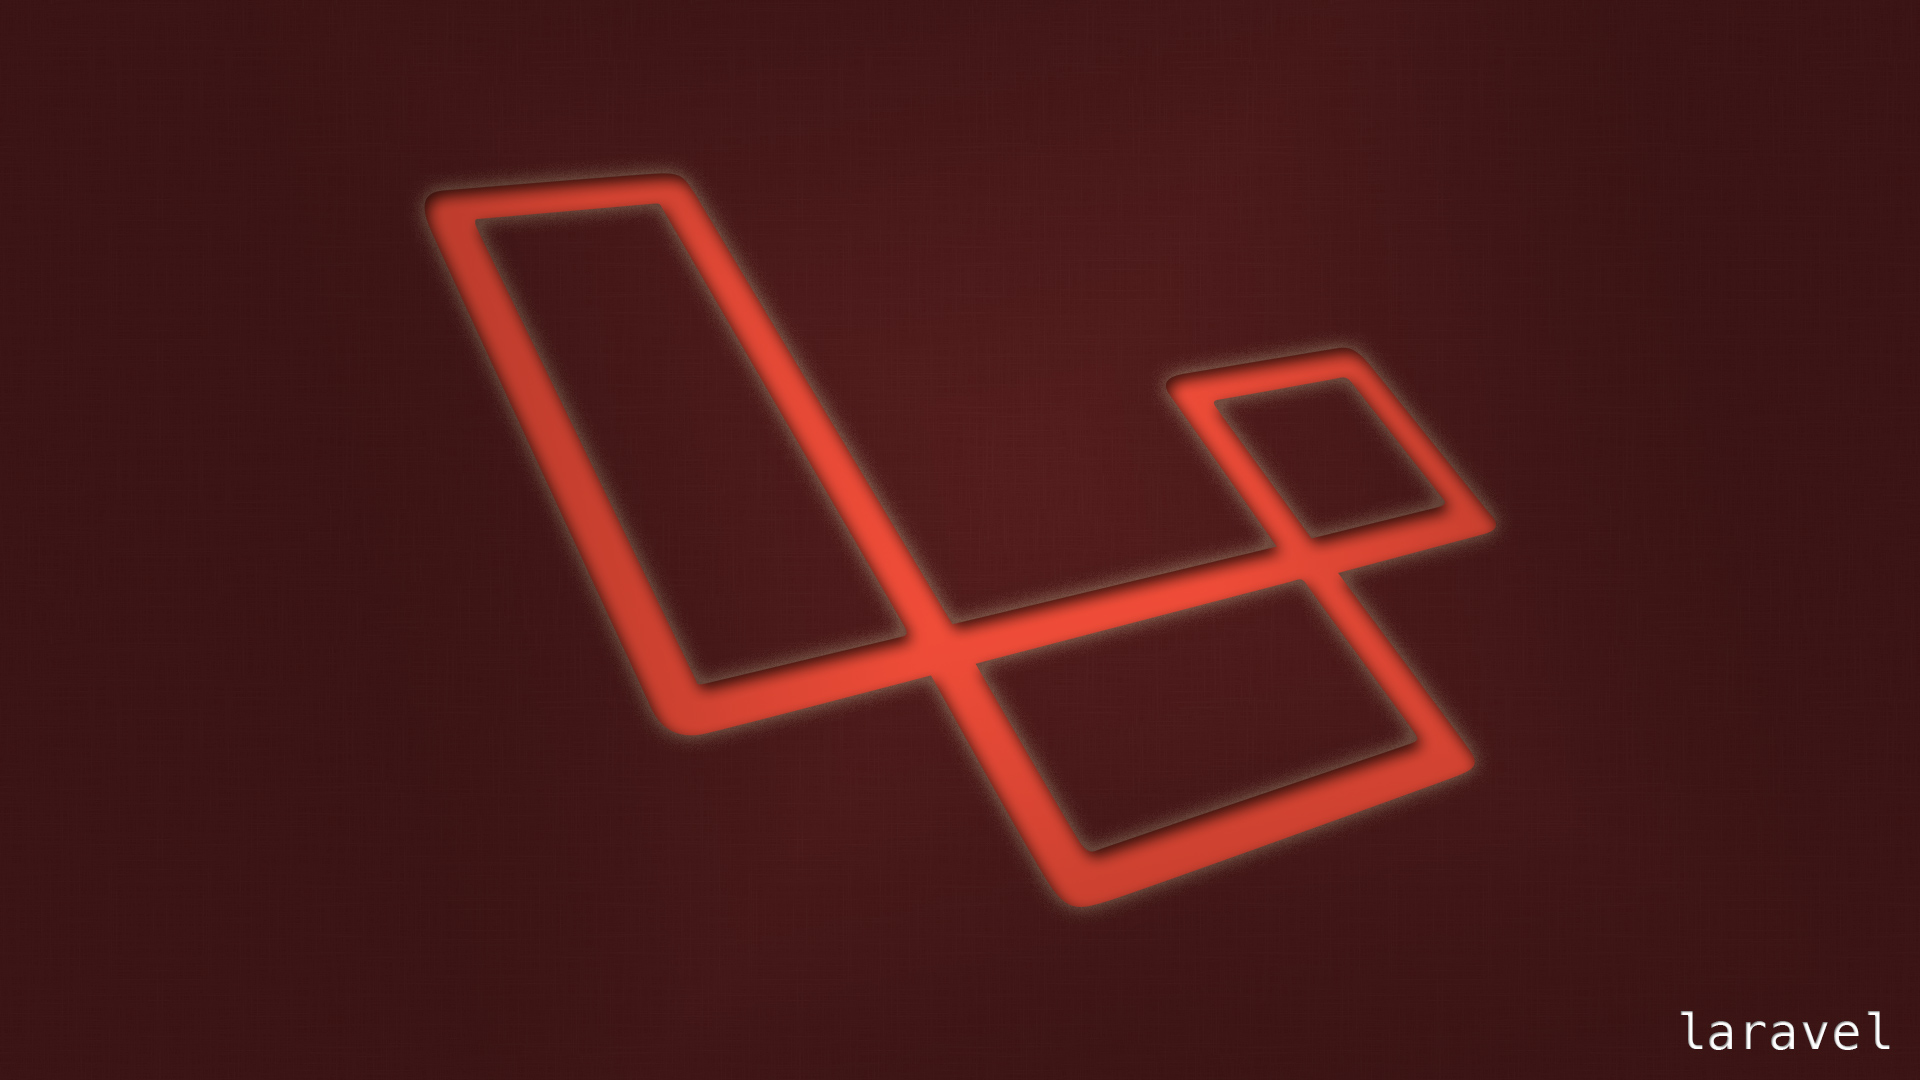 laravel_red_1920x1080